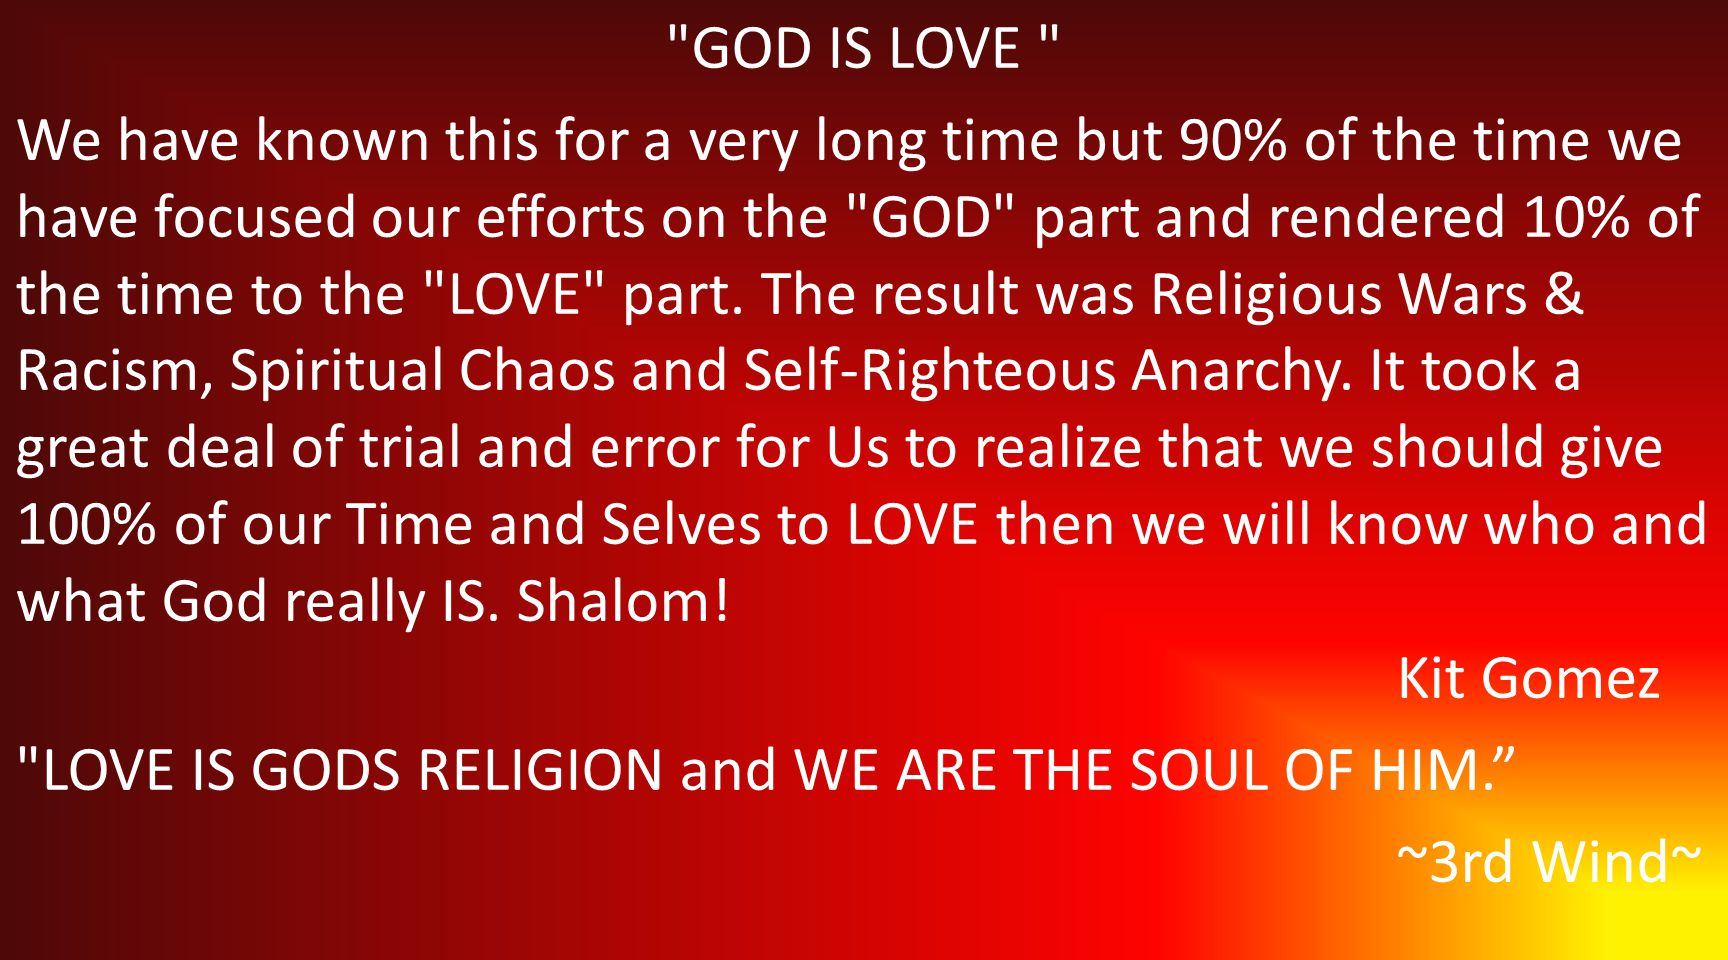 GOD IS LOVE We have known this for a very long time but 90% of the time we have focused our efforts on the GOD part and rendered 10% of the time to the LOVE part.